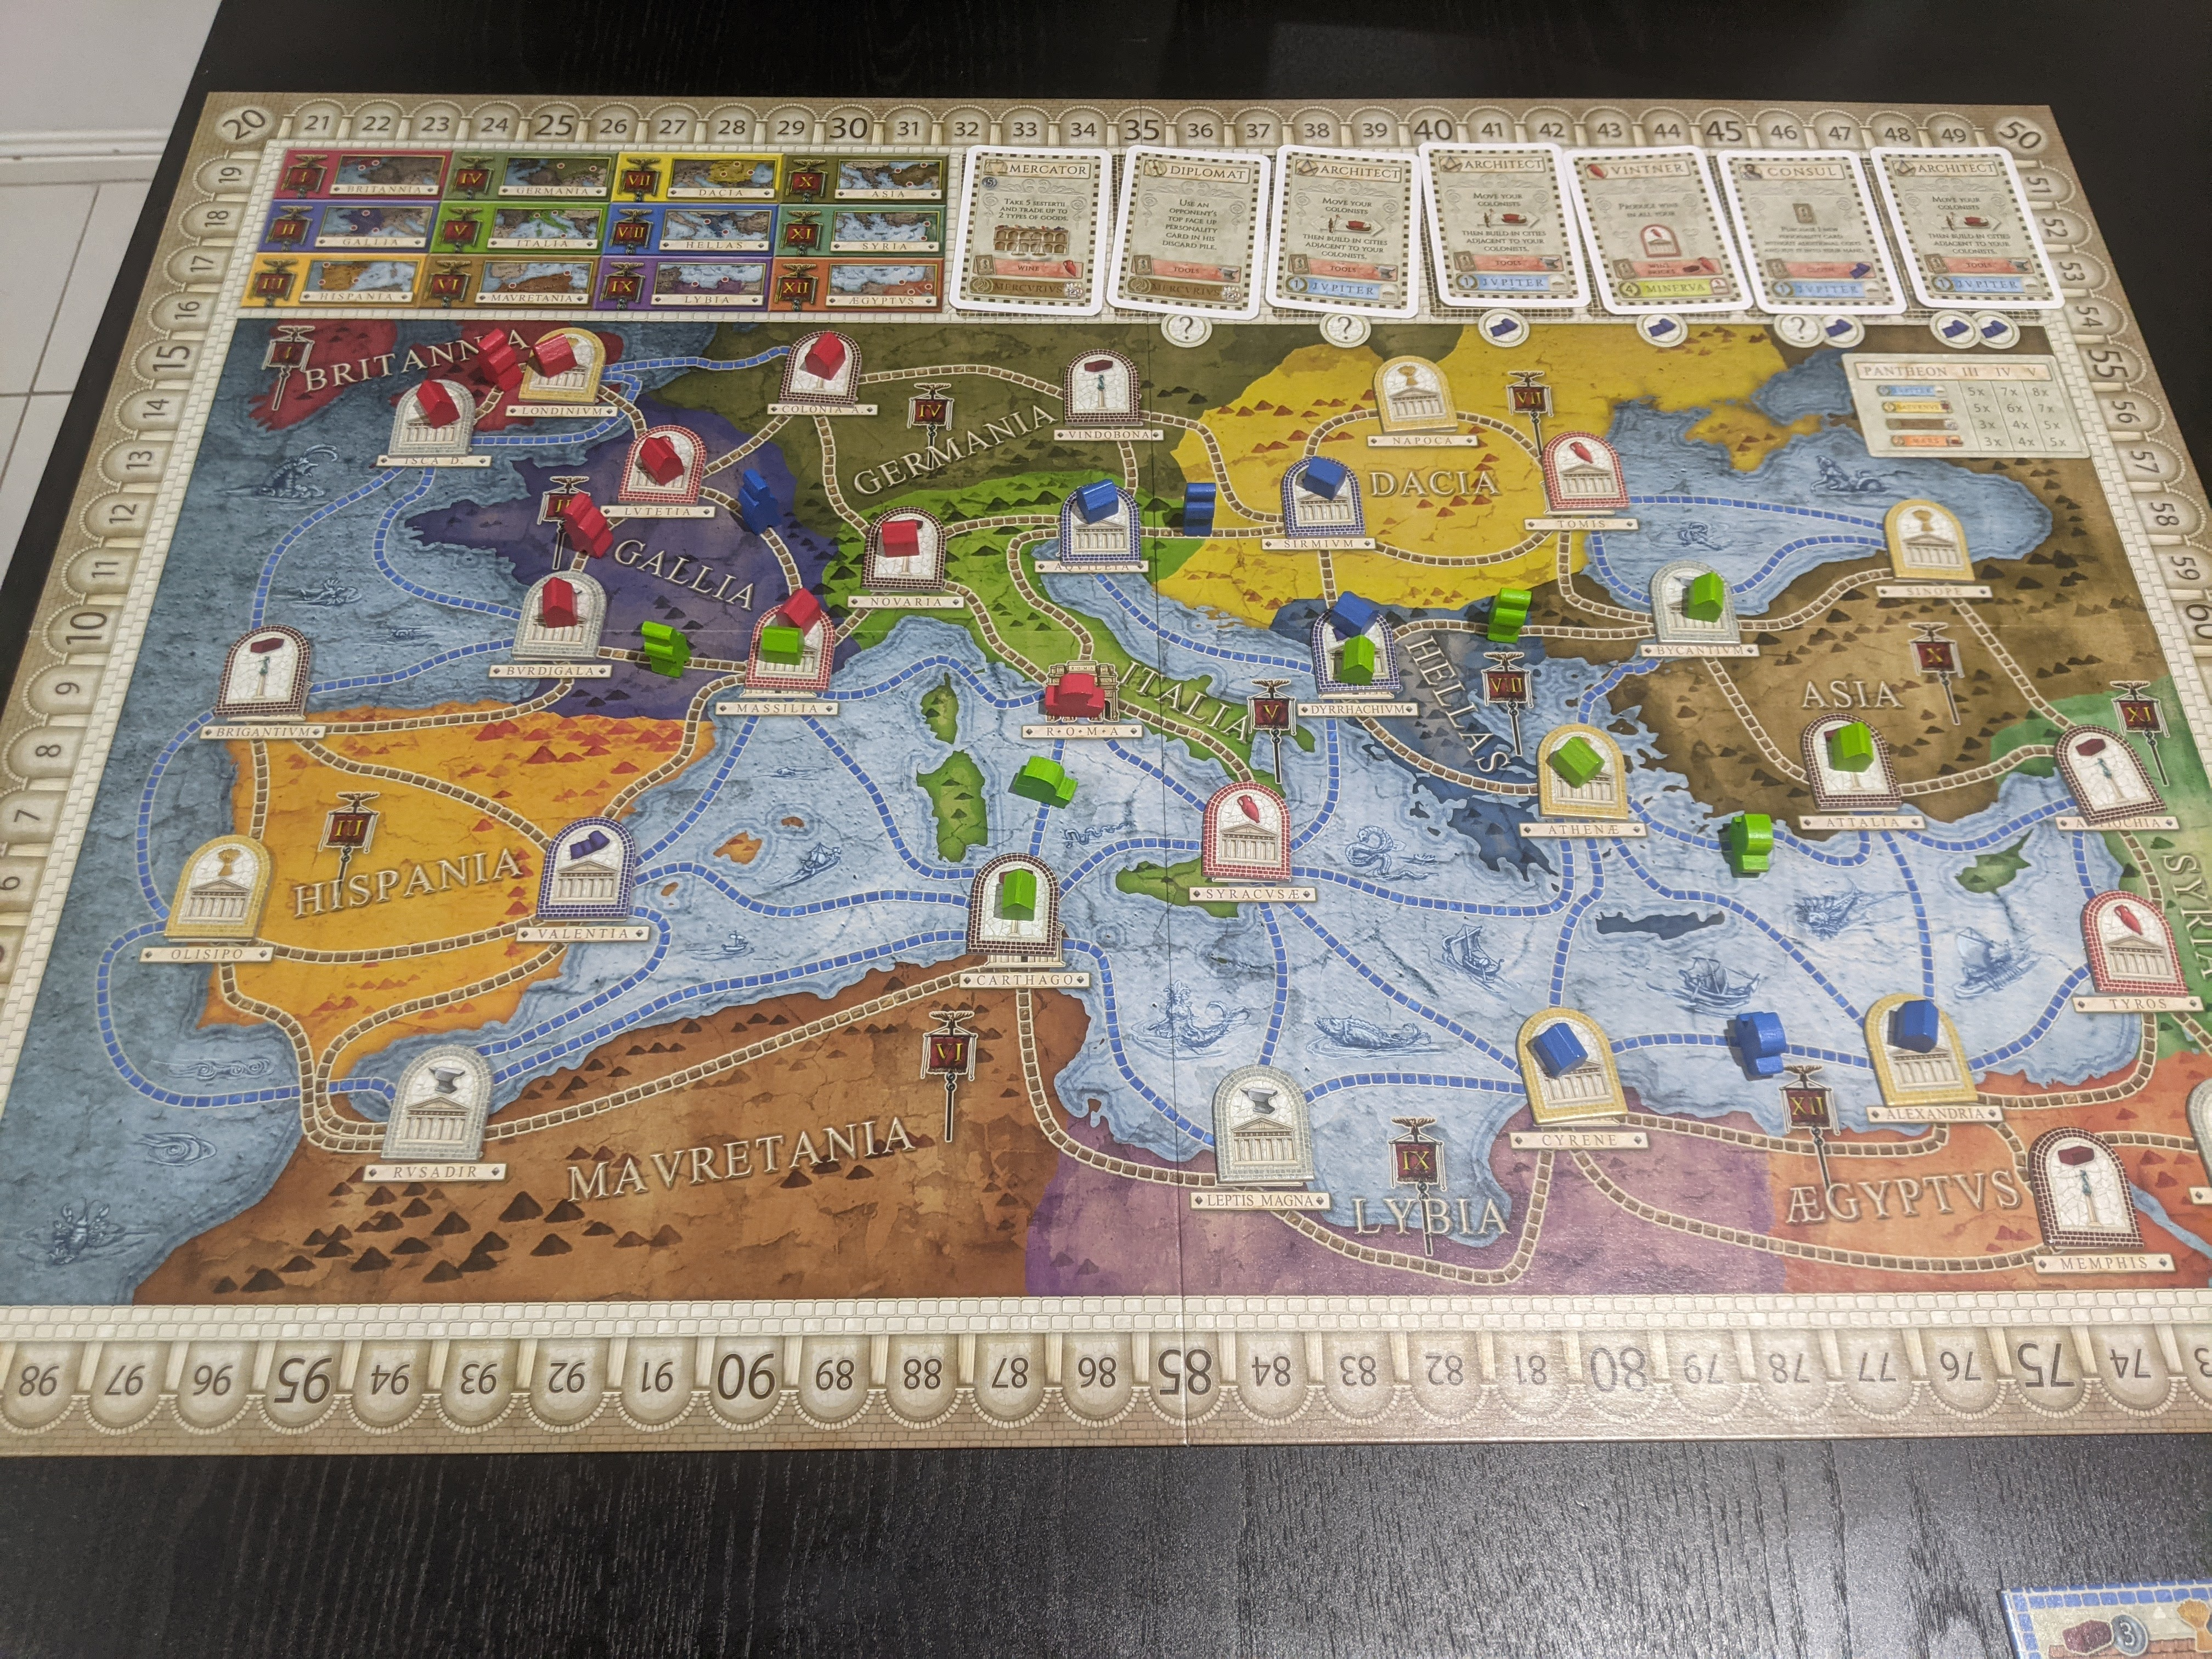 Concordia during the game, it's a map of Mesopotamia with blue, green, and red cities sprinkled across the board.